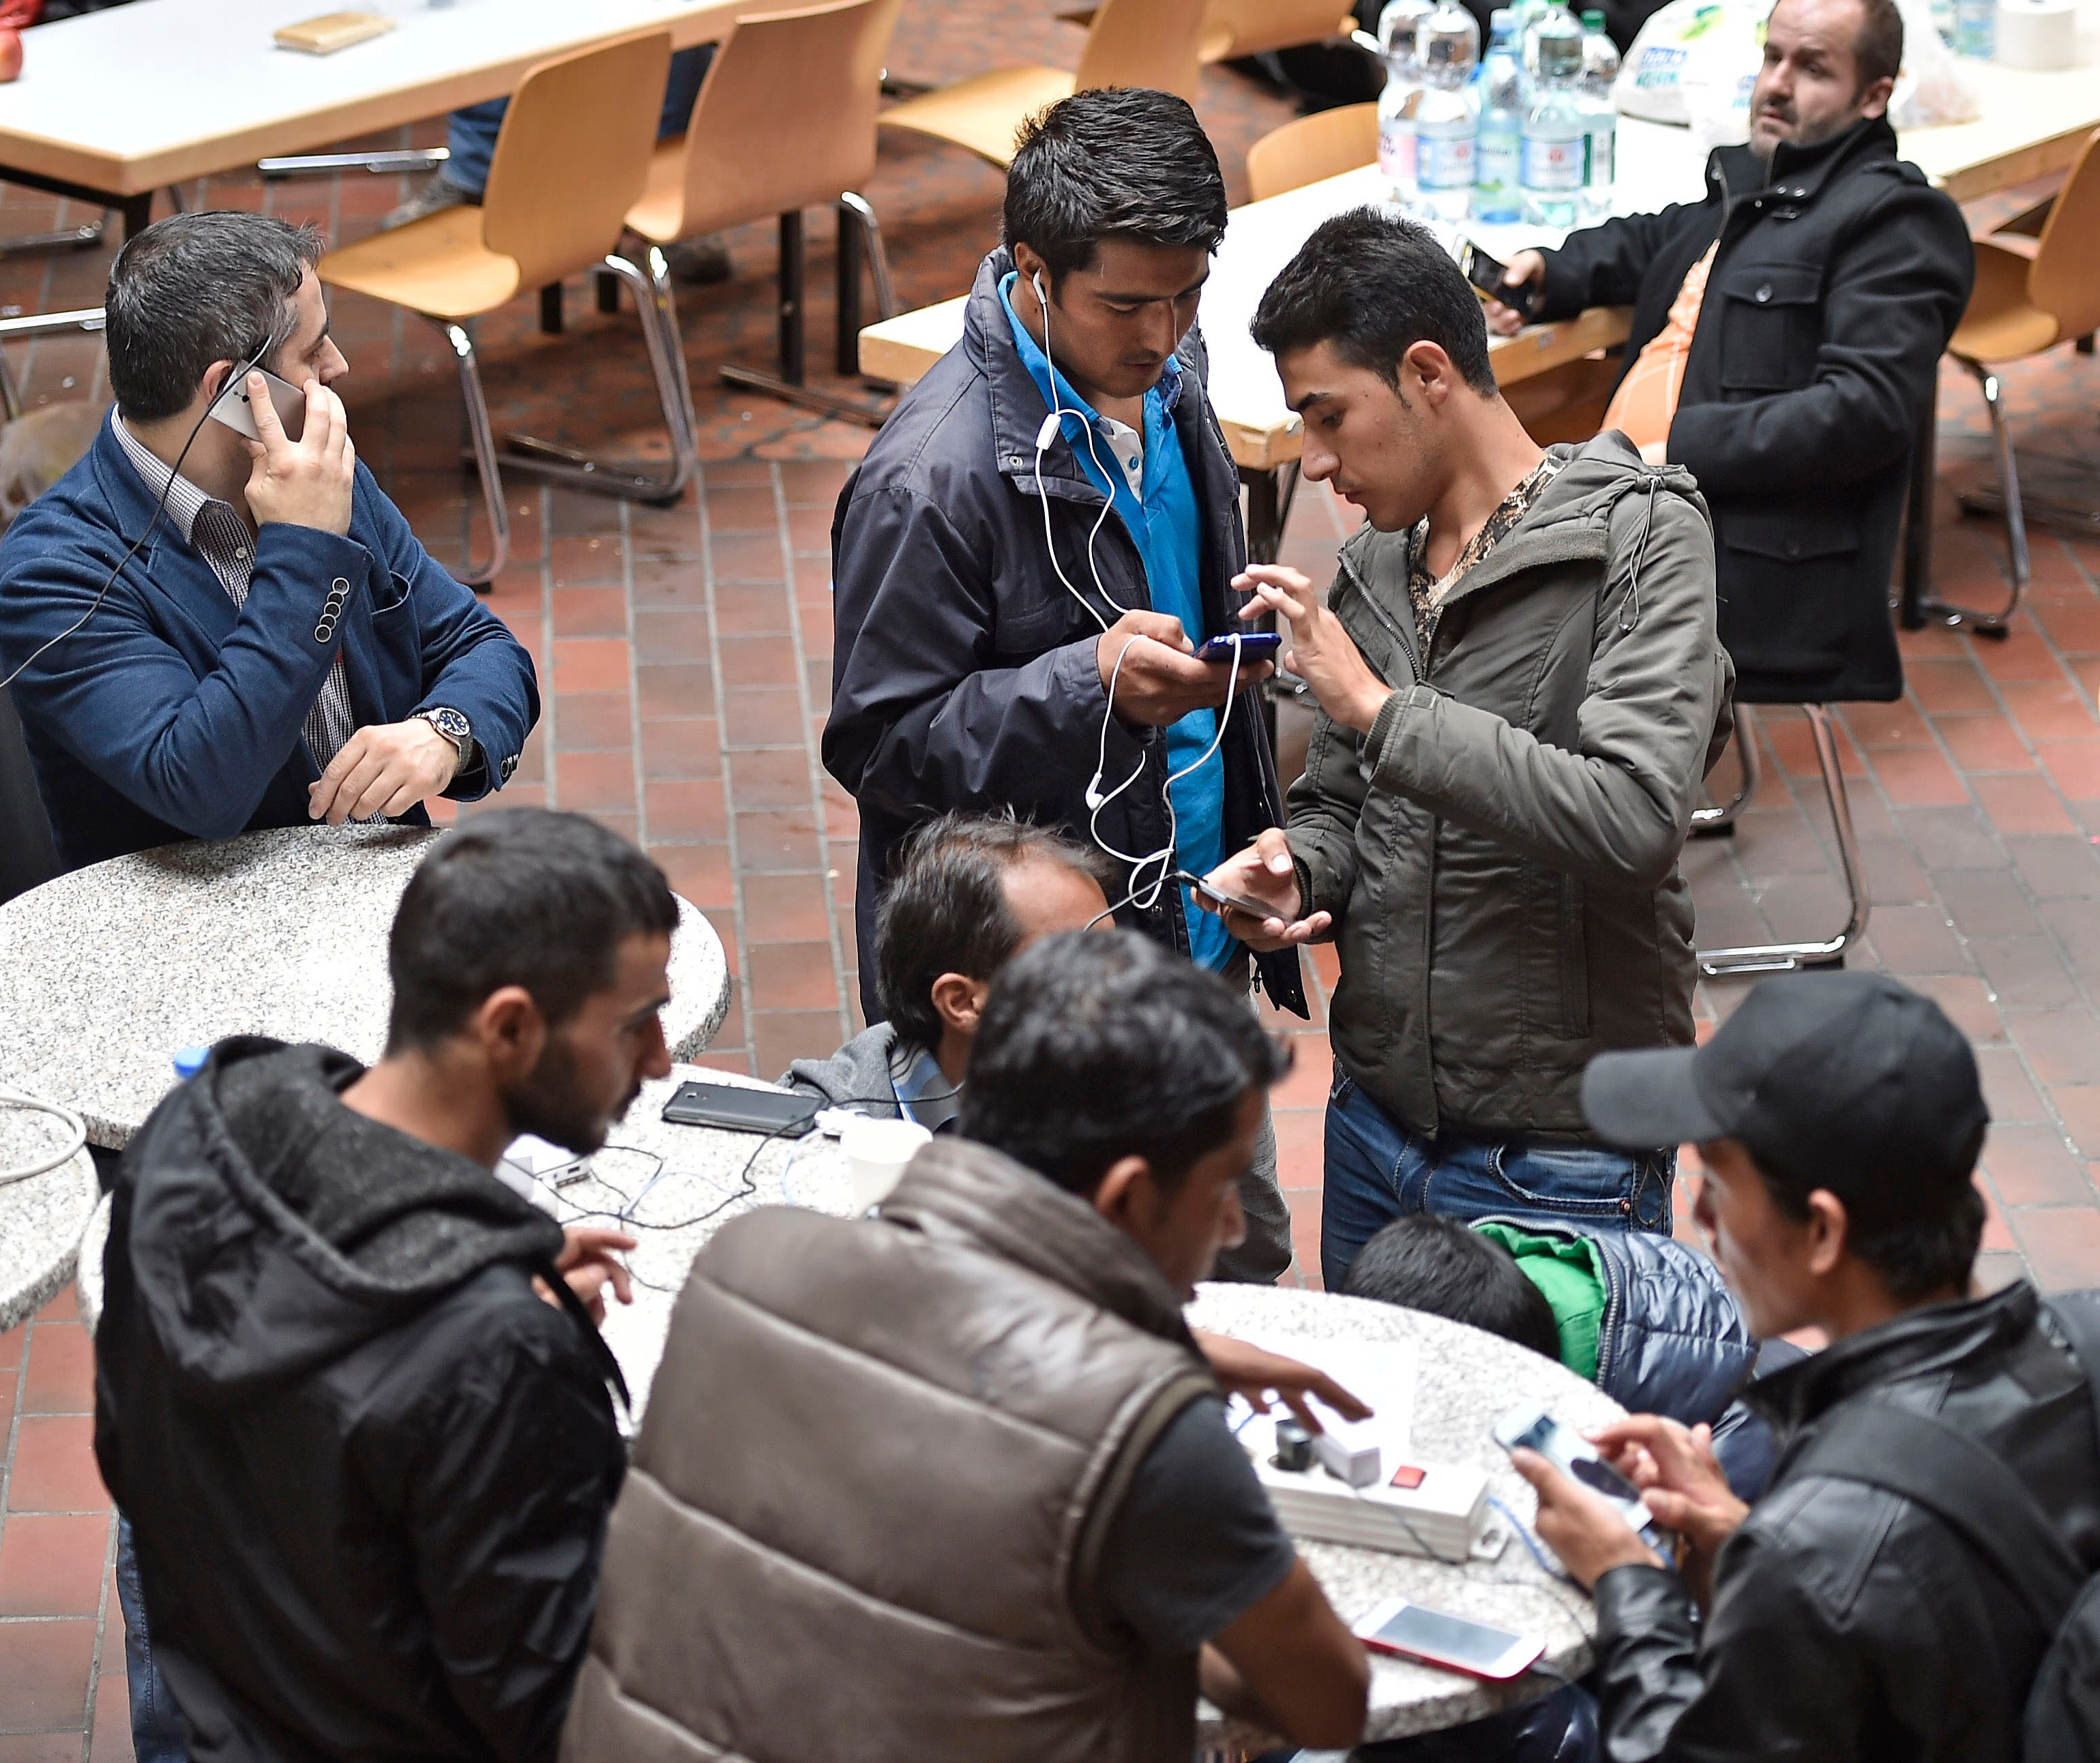 Migrants using their smartphones as they wait for transport to an asylum seekers facility in Dortmund, Germany,